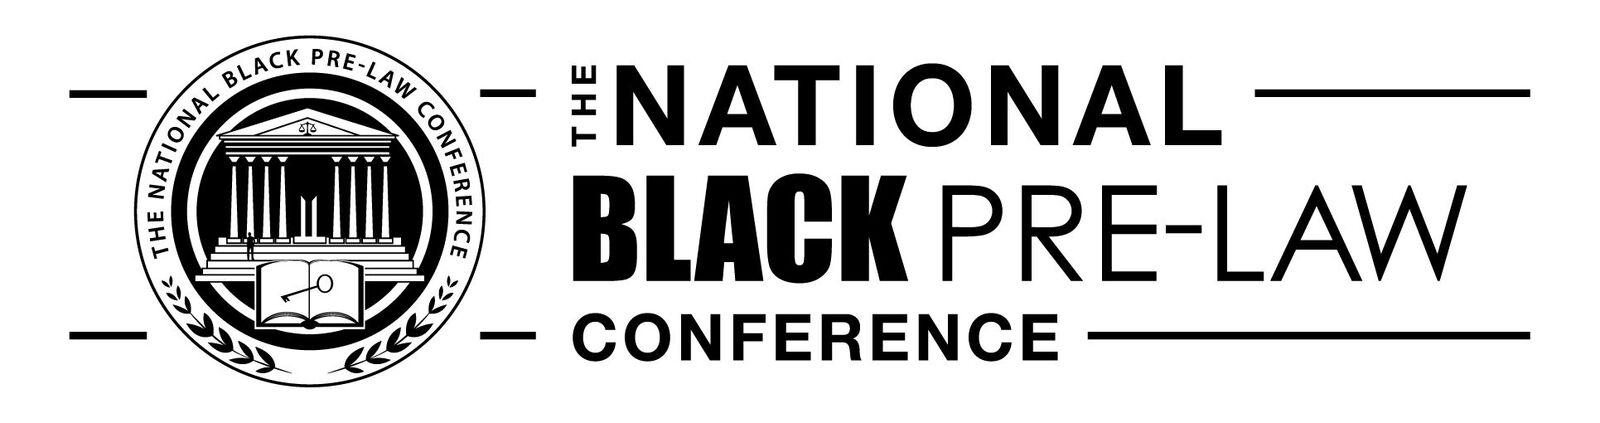 National Black Pre-Law Conference and Law Fair Logo